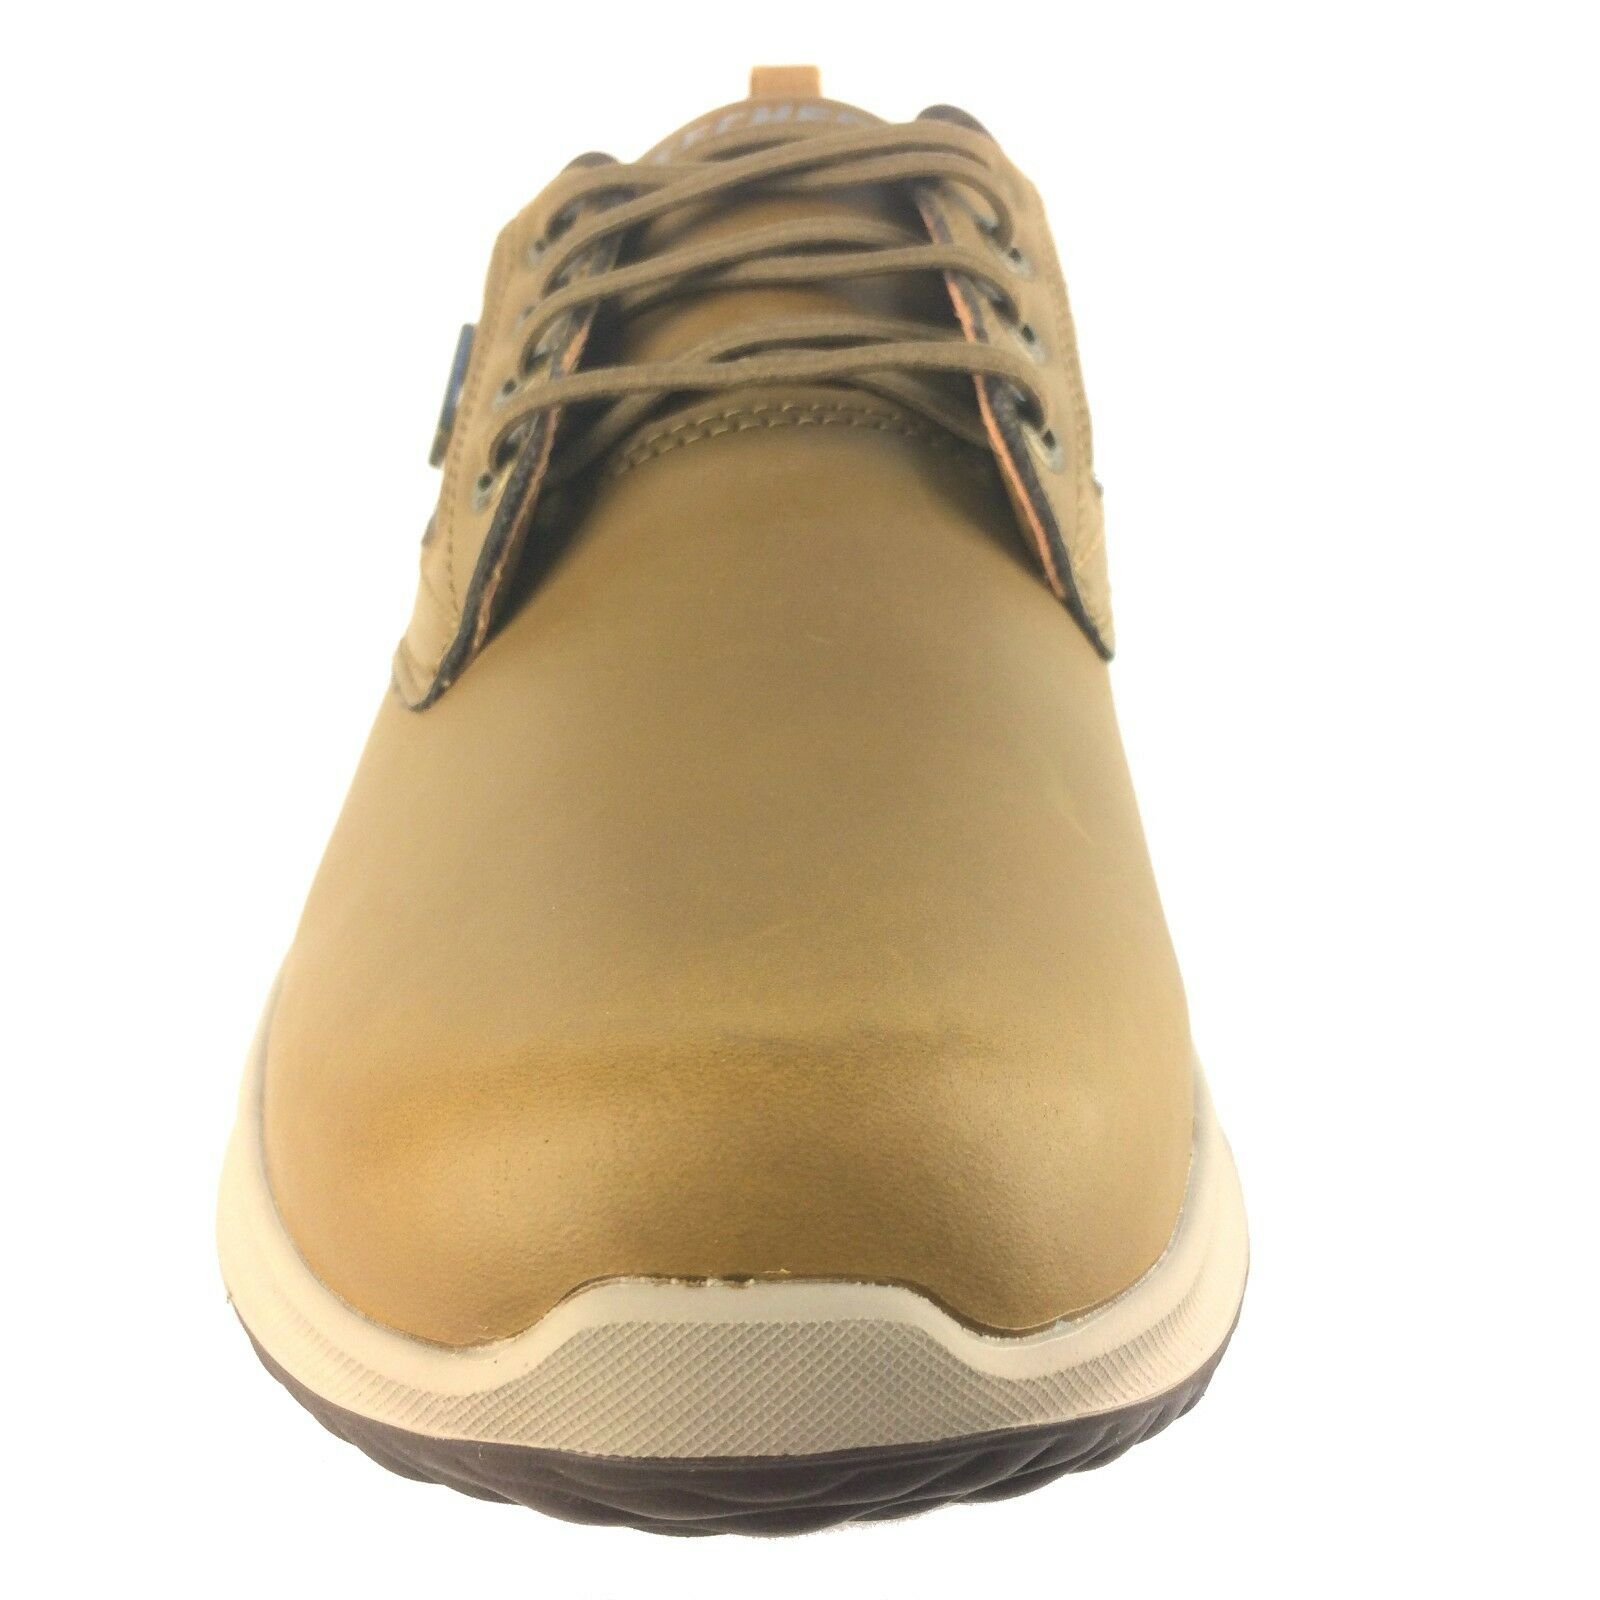 65693/TAN Skechers, Antigo Uomo Delson Antigo Oxfords Antigo Skechers, Sneaker f27b05